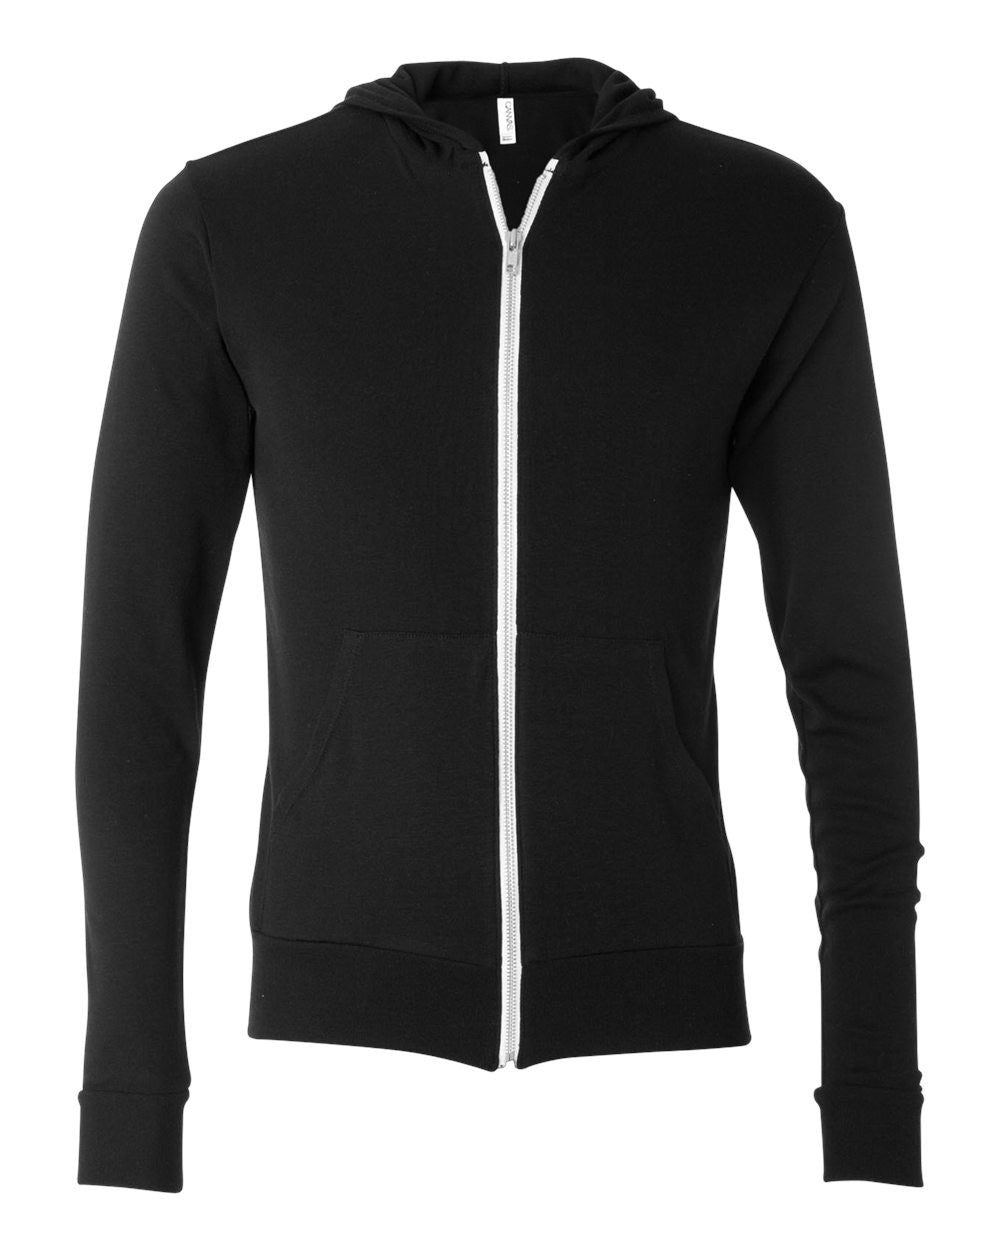 3939 - Unisex Triblend Lightweight Hooded Full-Zip Tee